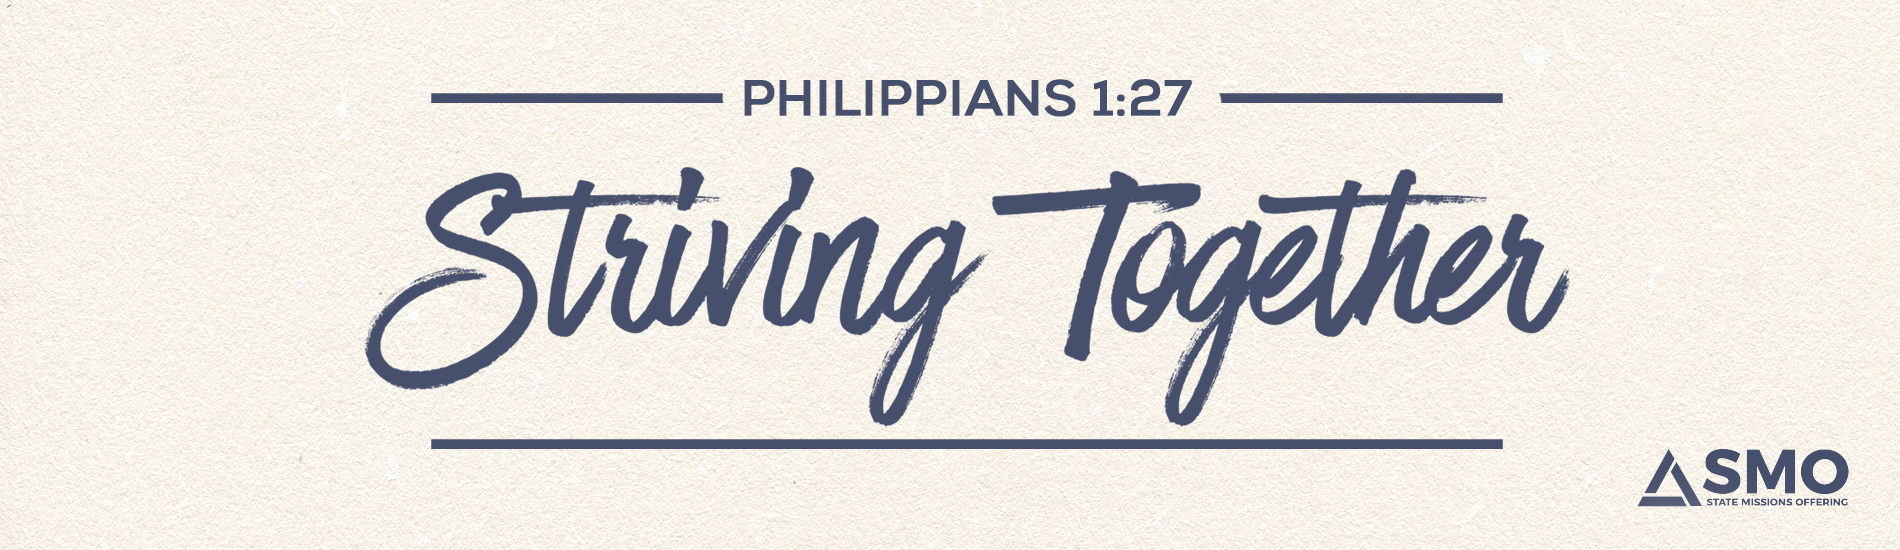 Striving Together - Philippians 1:27